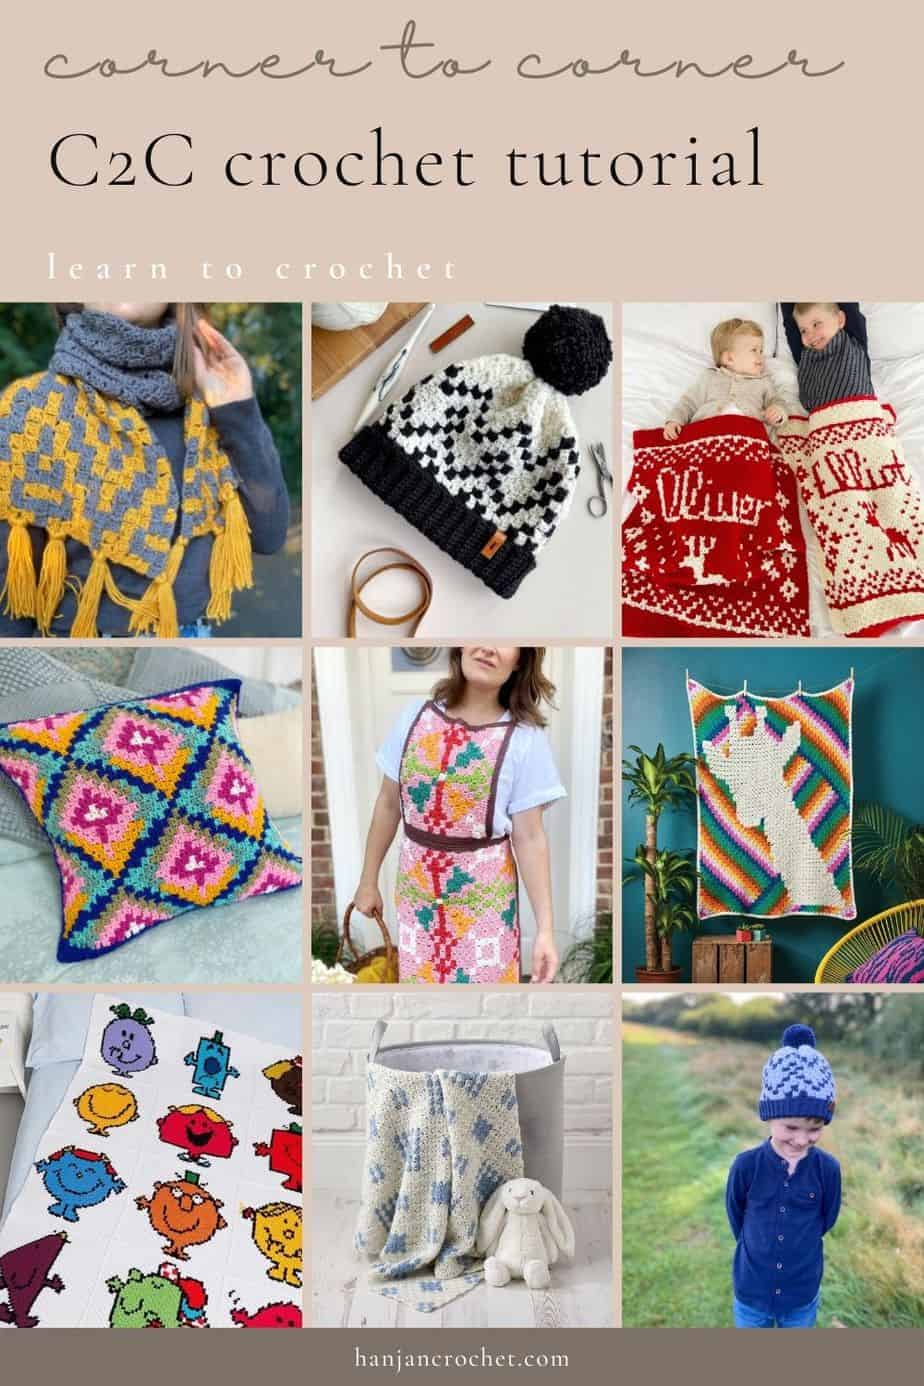 image showing 9 c2c crochet patterns including blankets, pillows, hats, scarf and Christmas present sack